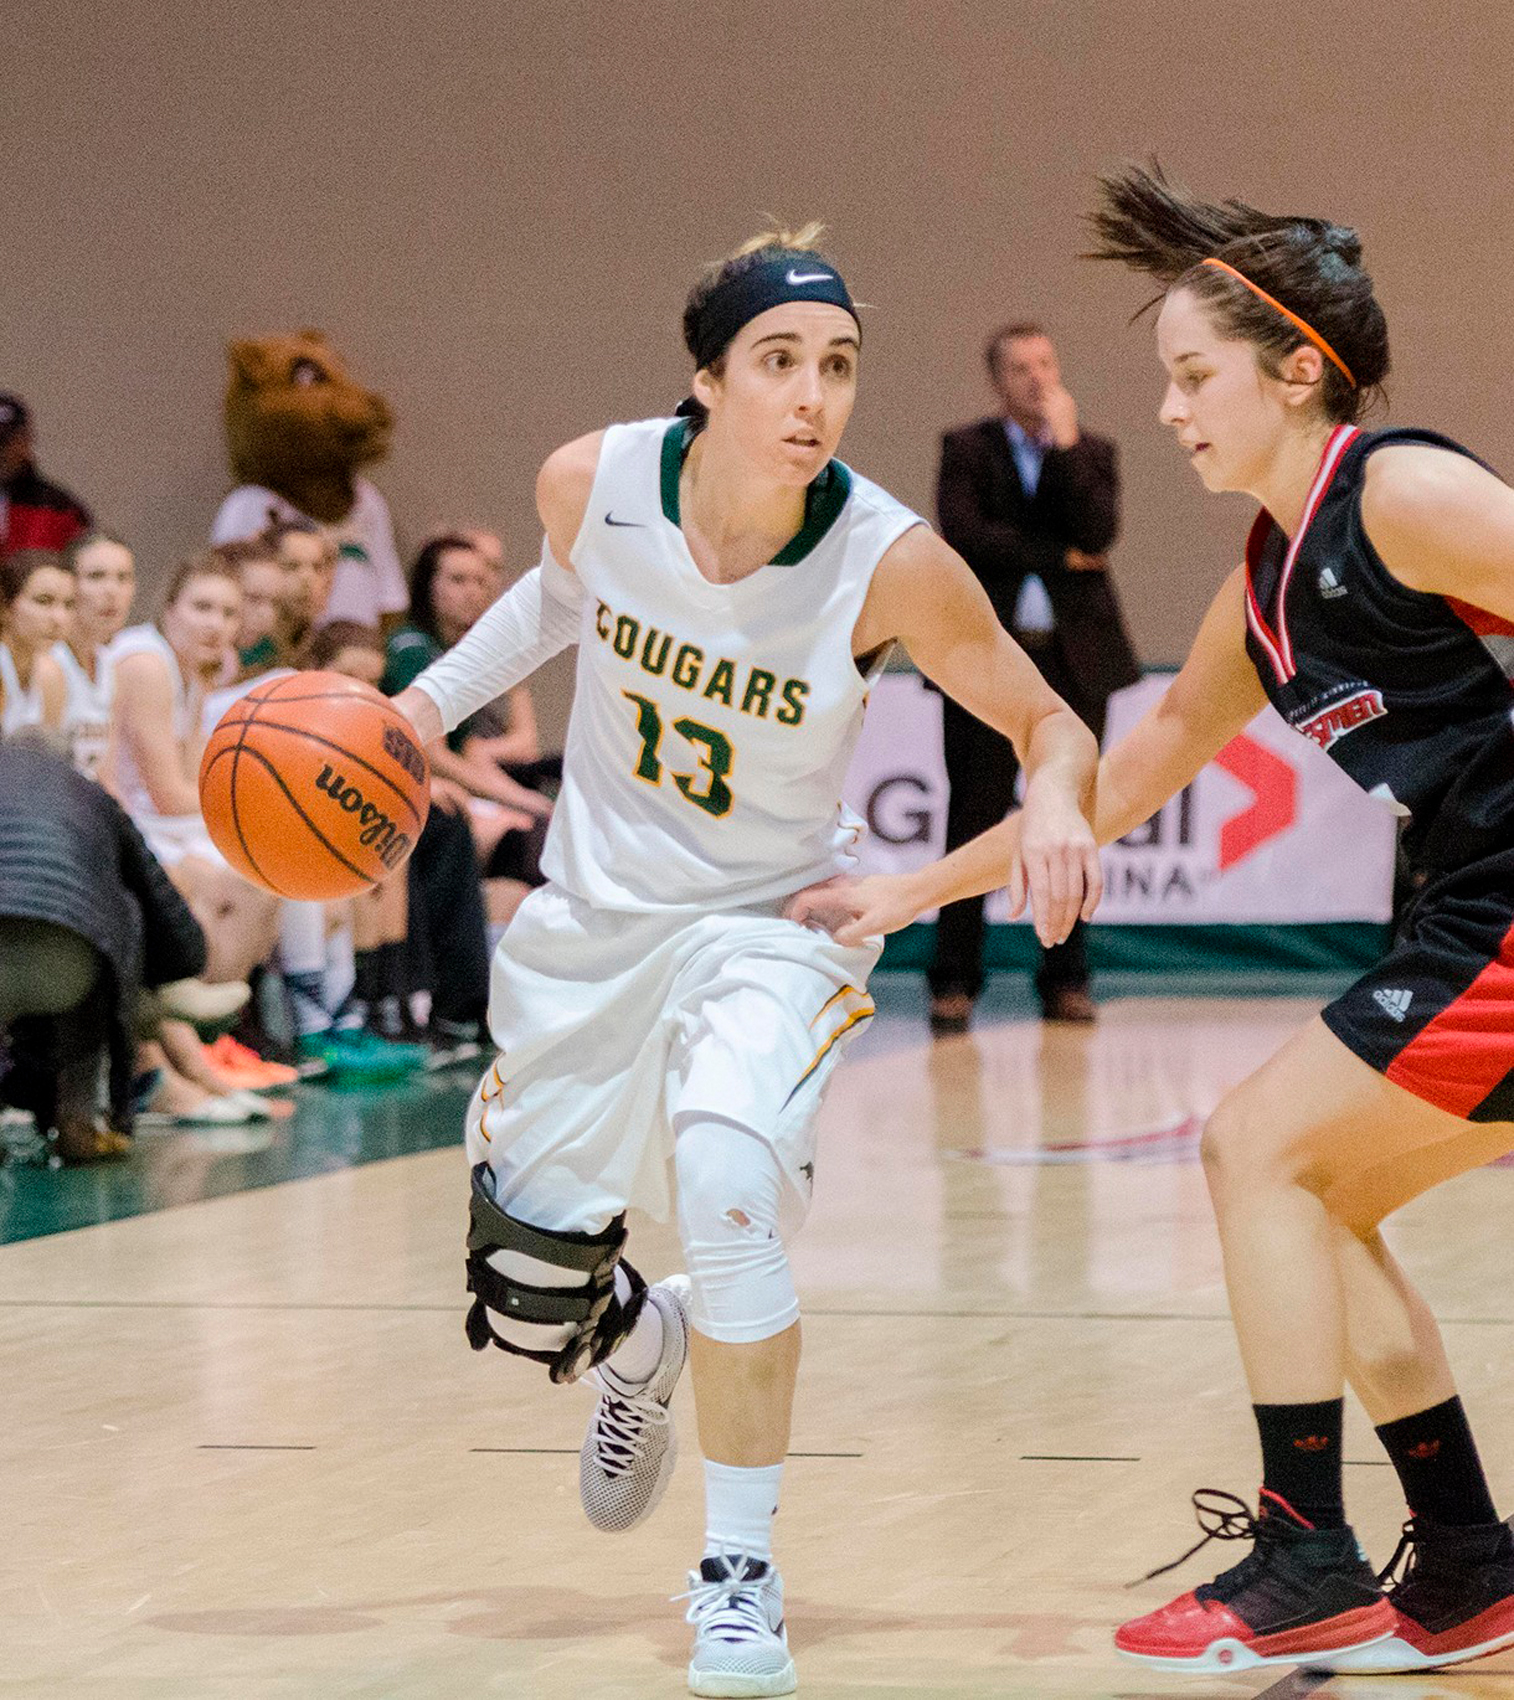 Dobner wore number 13 during her tenure with the Cougars. (Photo courtesy  of U of R Athletics.)